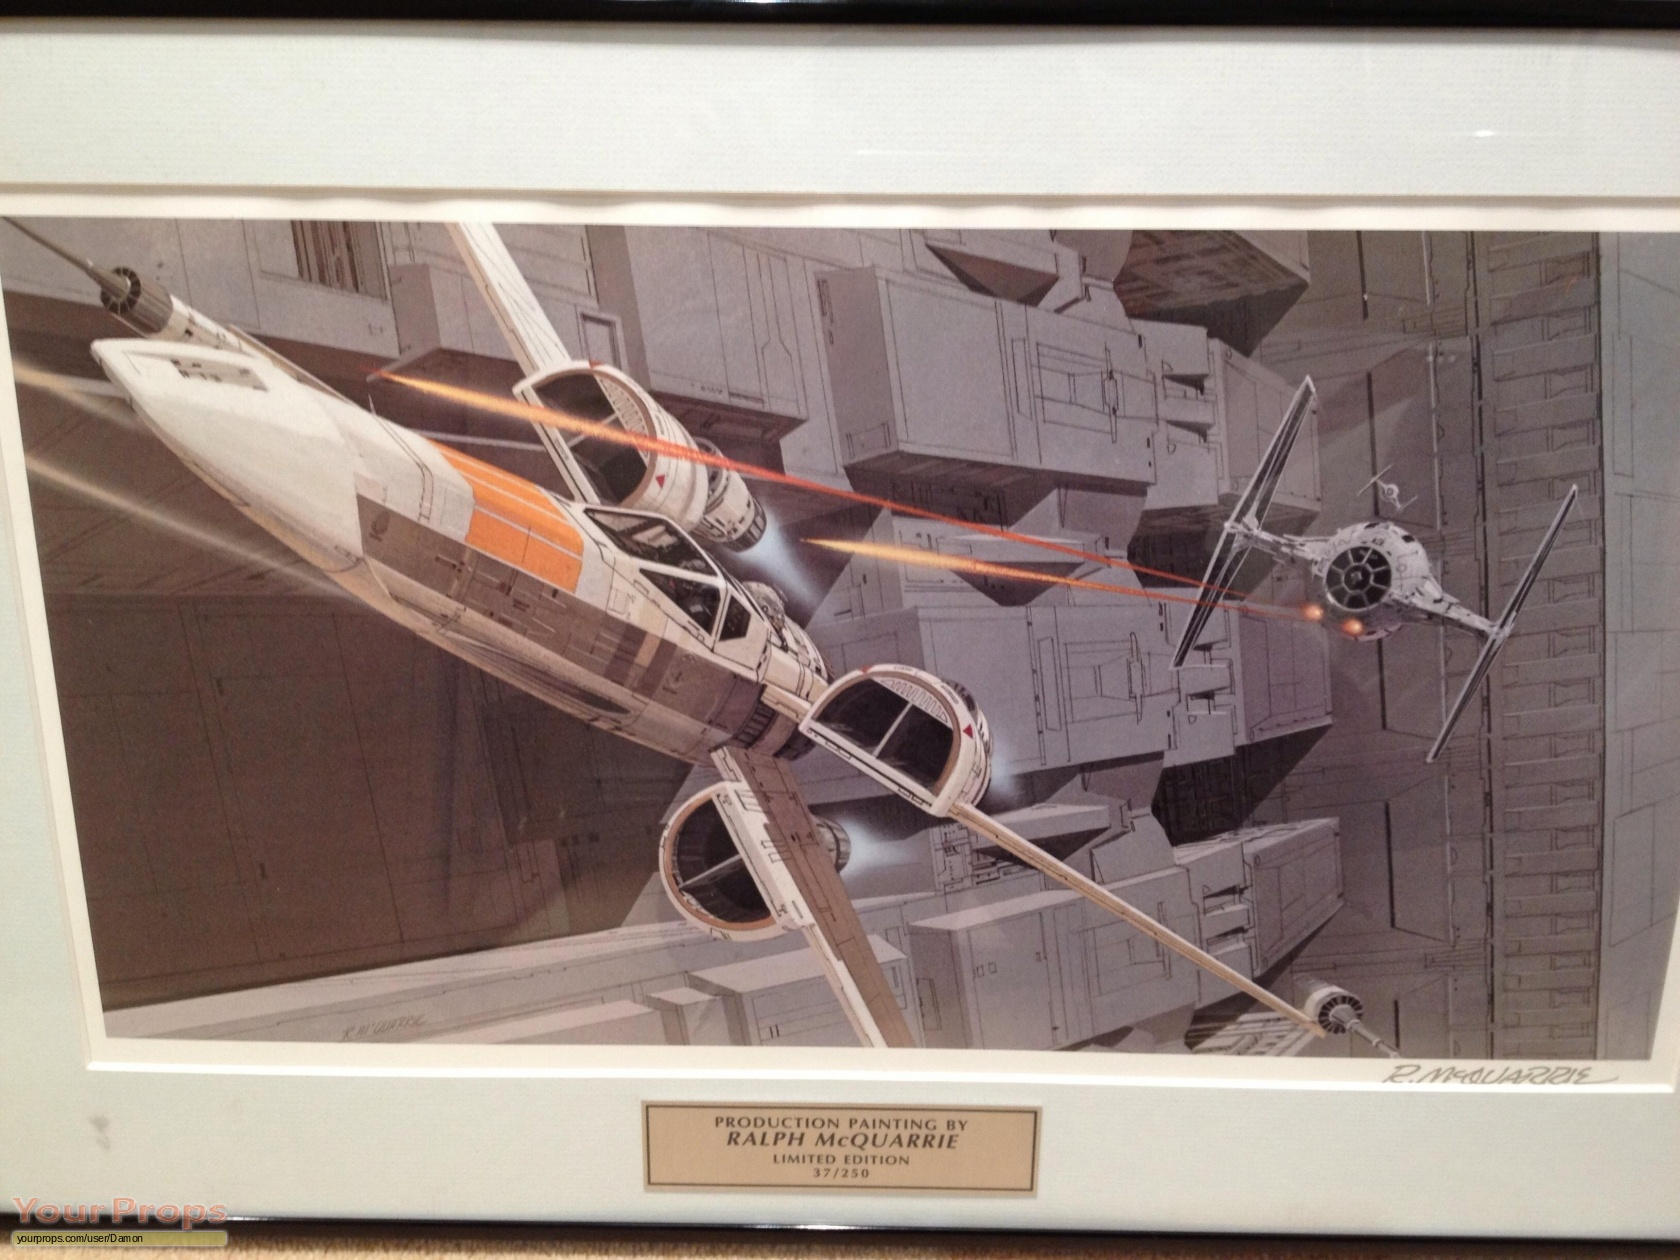 Star Wars A New Hope Replica Production Artwork